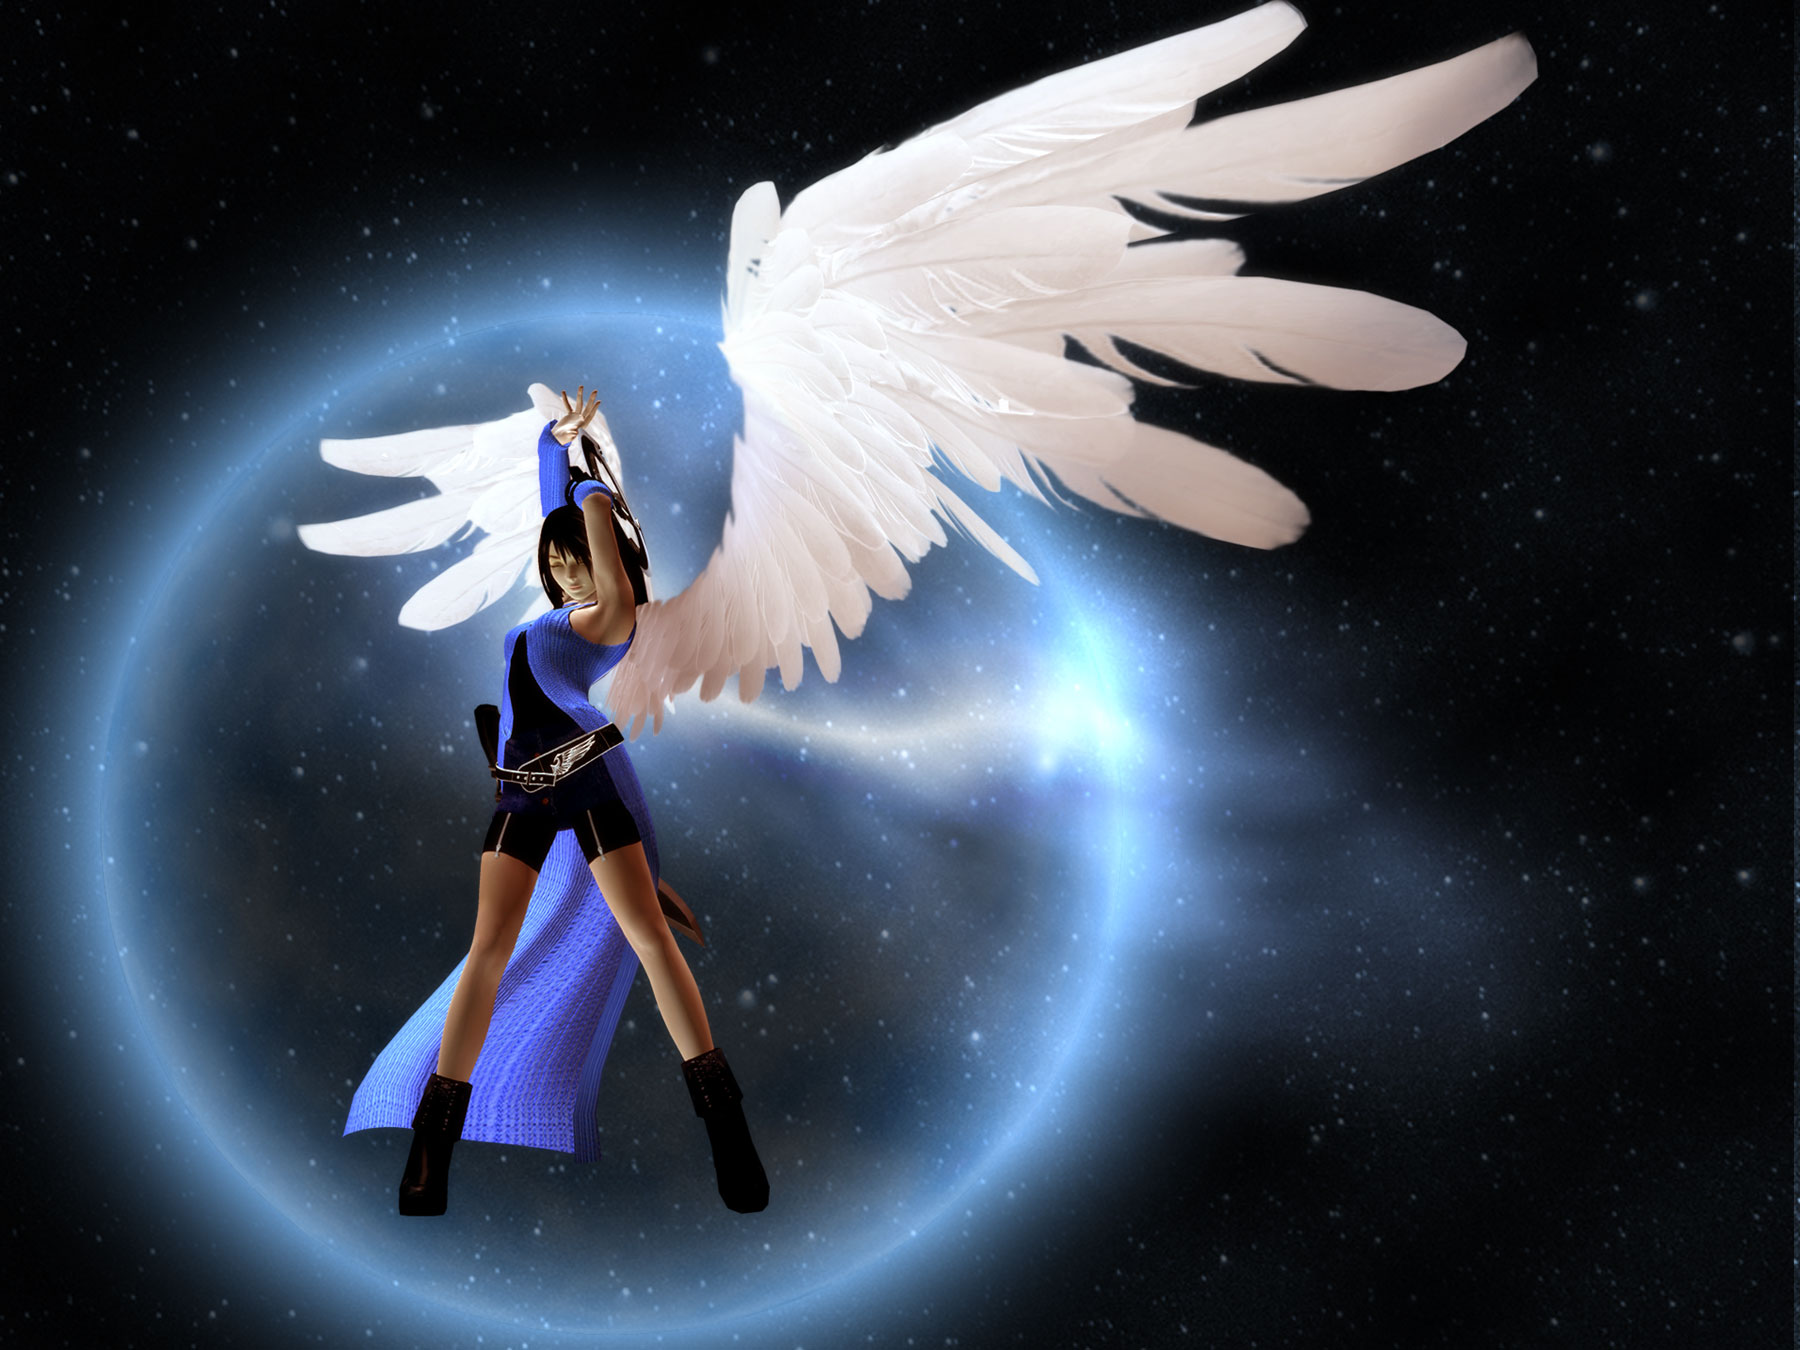 File:Rinoa wings.jpg - Dead Fantasy Wiki